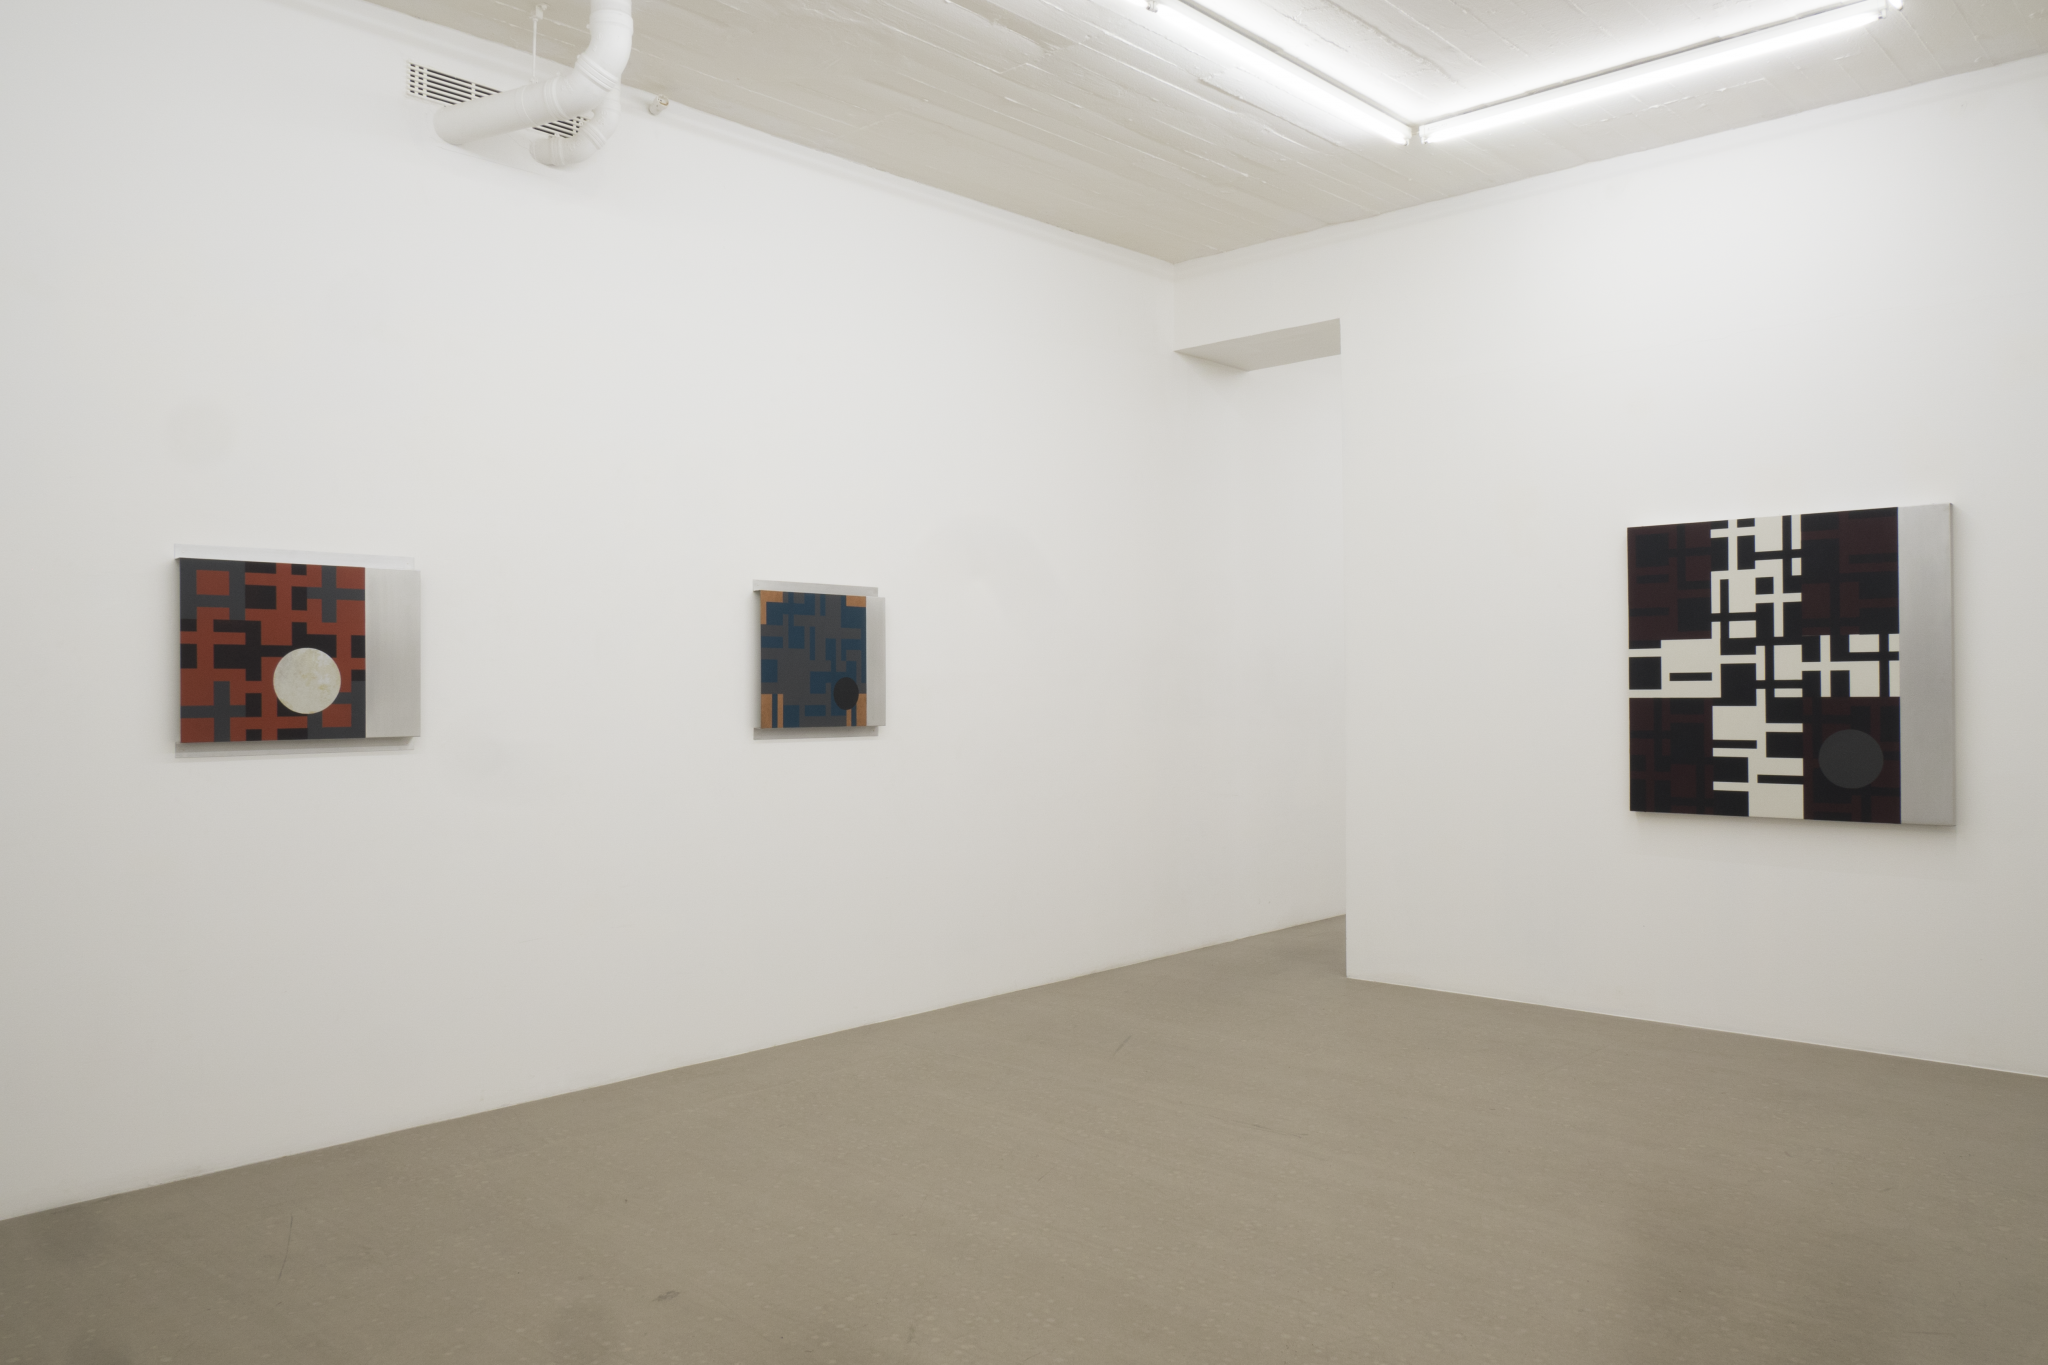 OLLE BORG - All but Heaven, exhibition view room 2